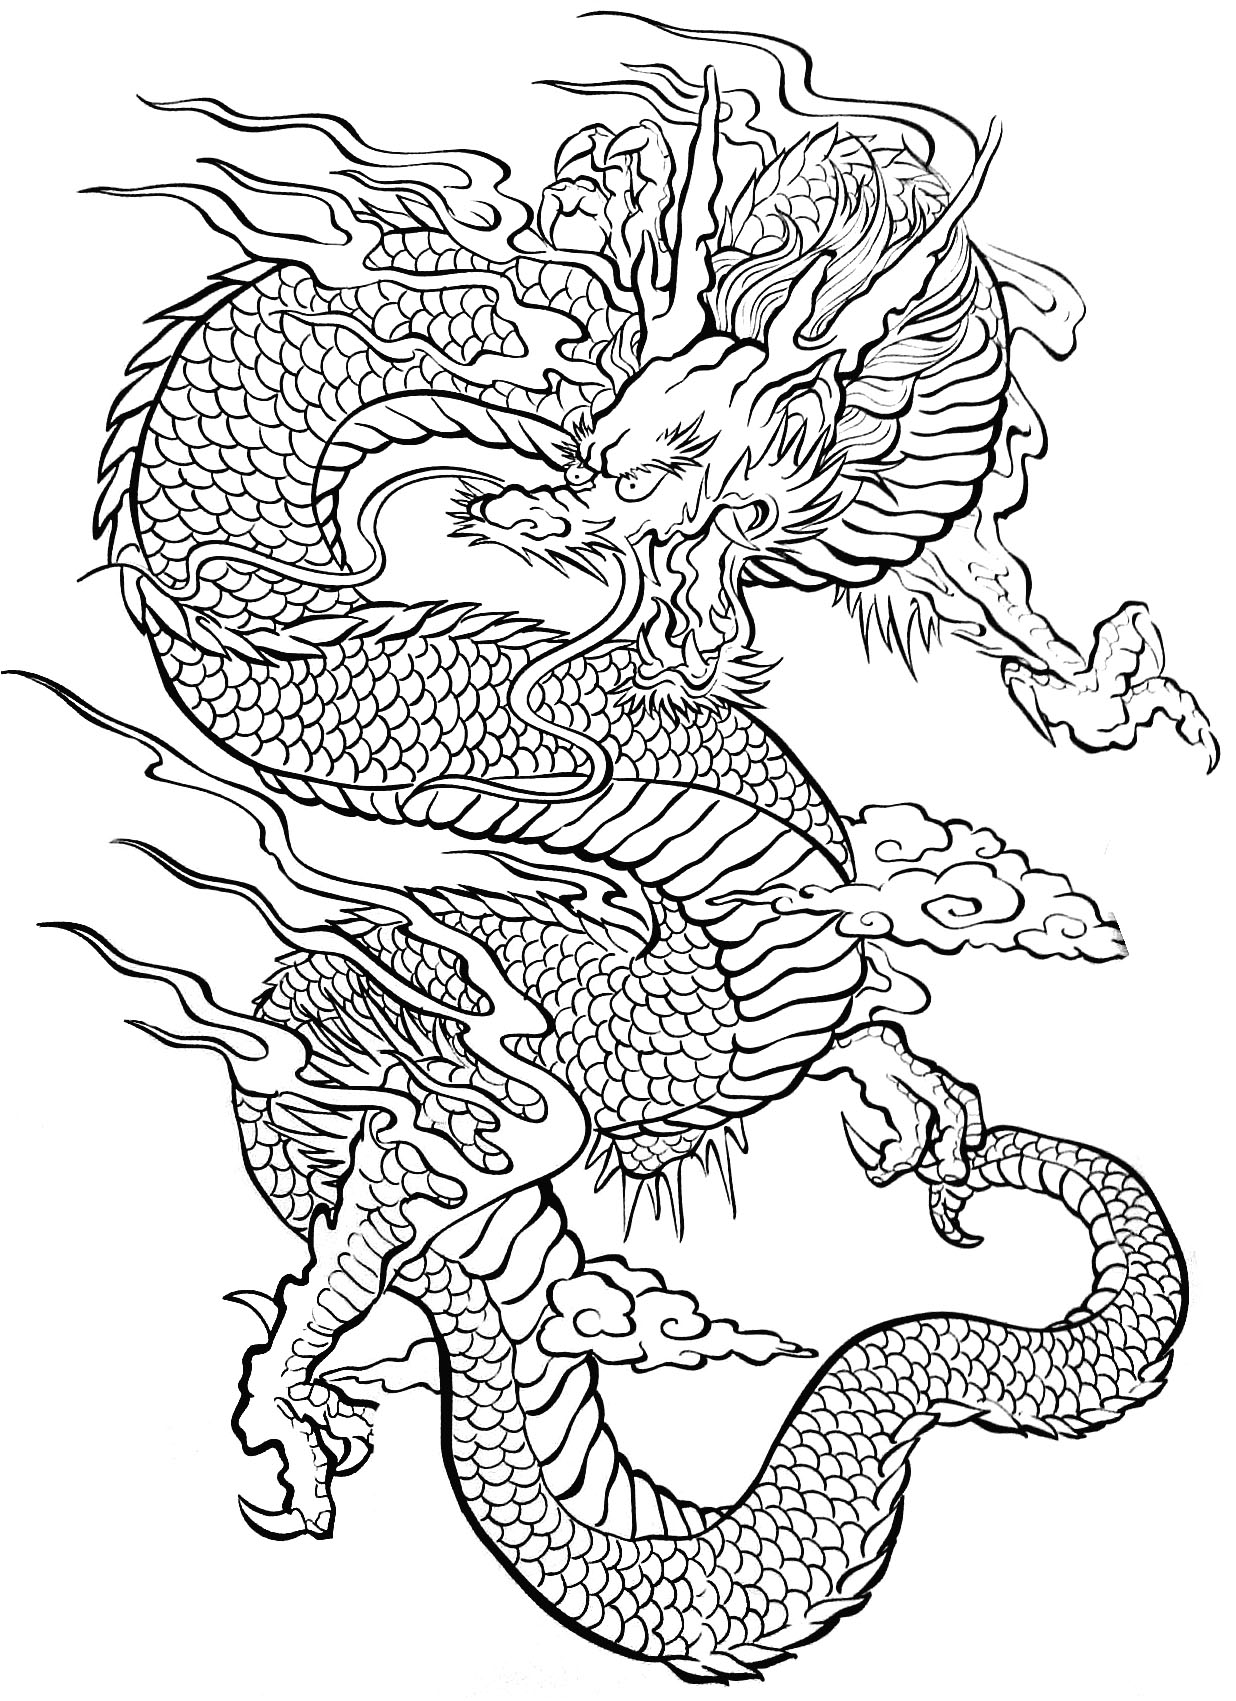 1236x1701 Focus Chinese Dragon Coloring Page Dragons And Fairies Pages Below